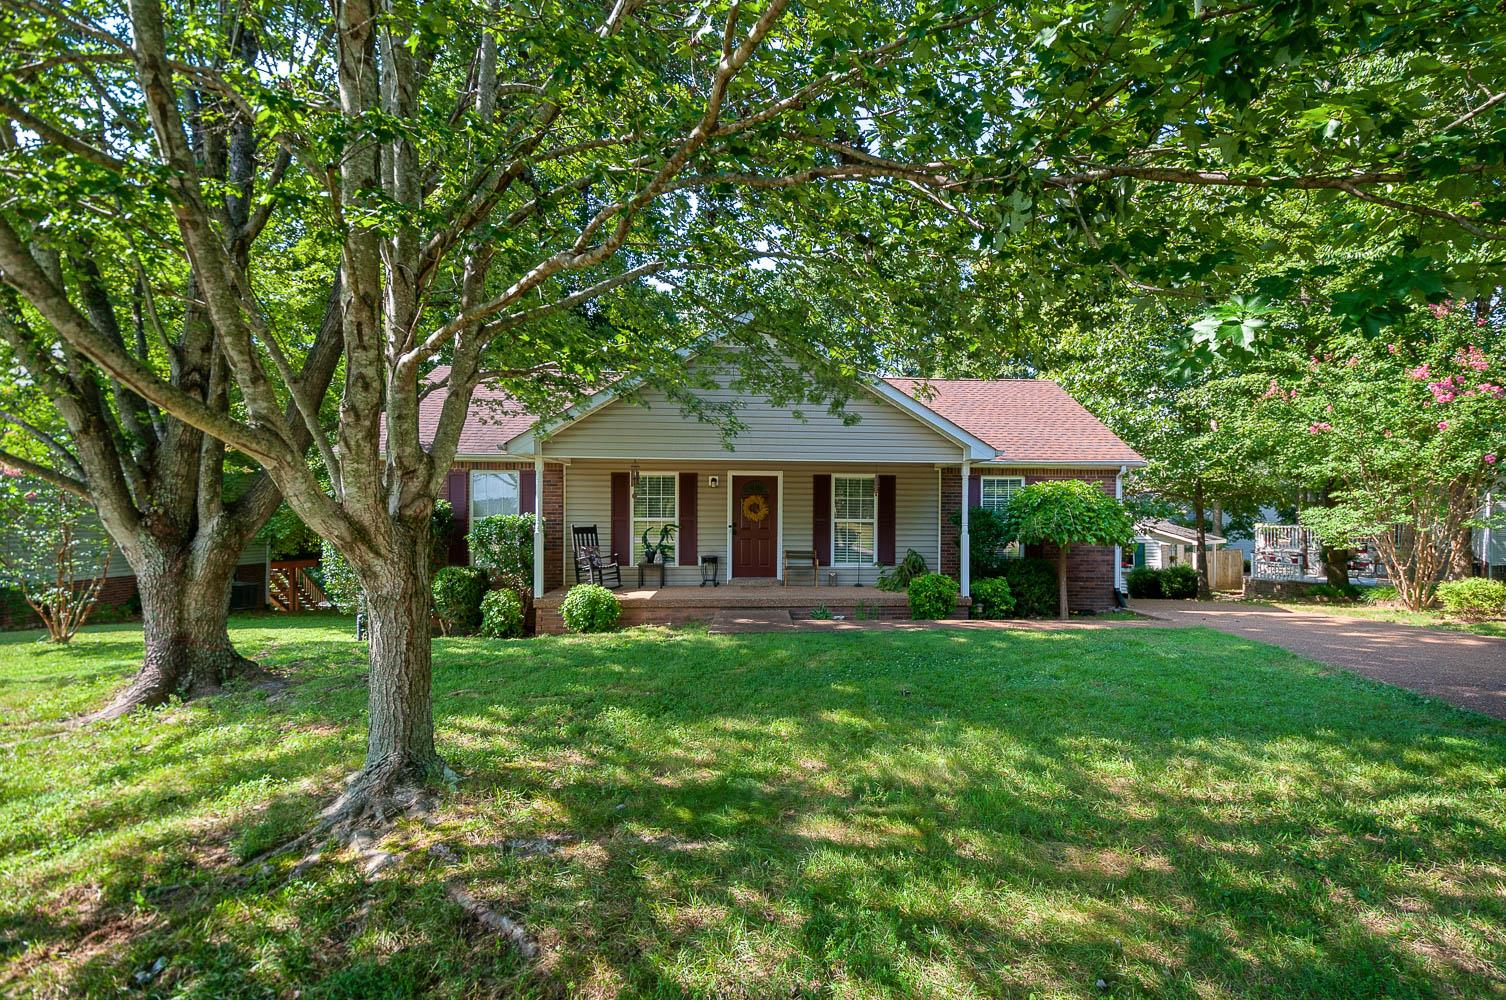 7124 Catherine Dr, Fairview in Williamson County County, TN 37062 Home for Sale